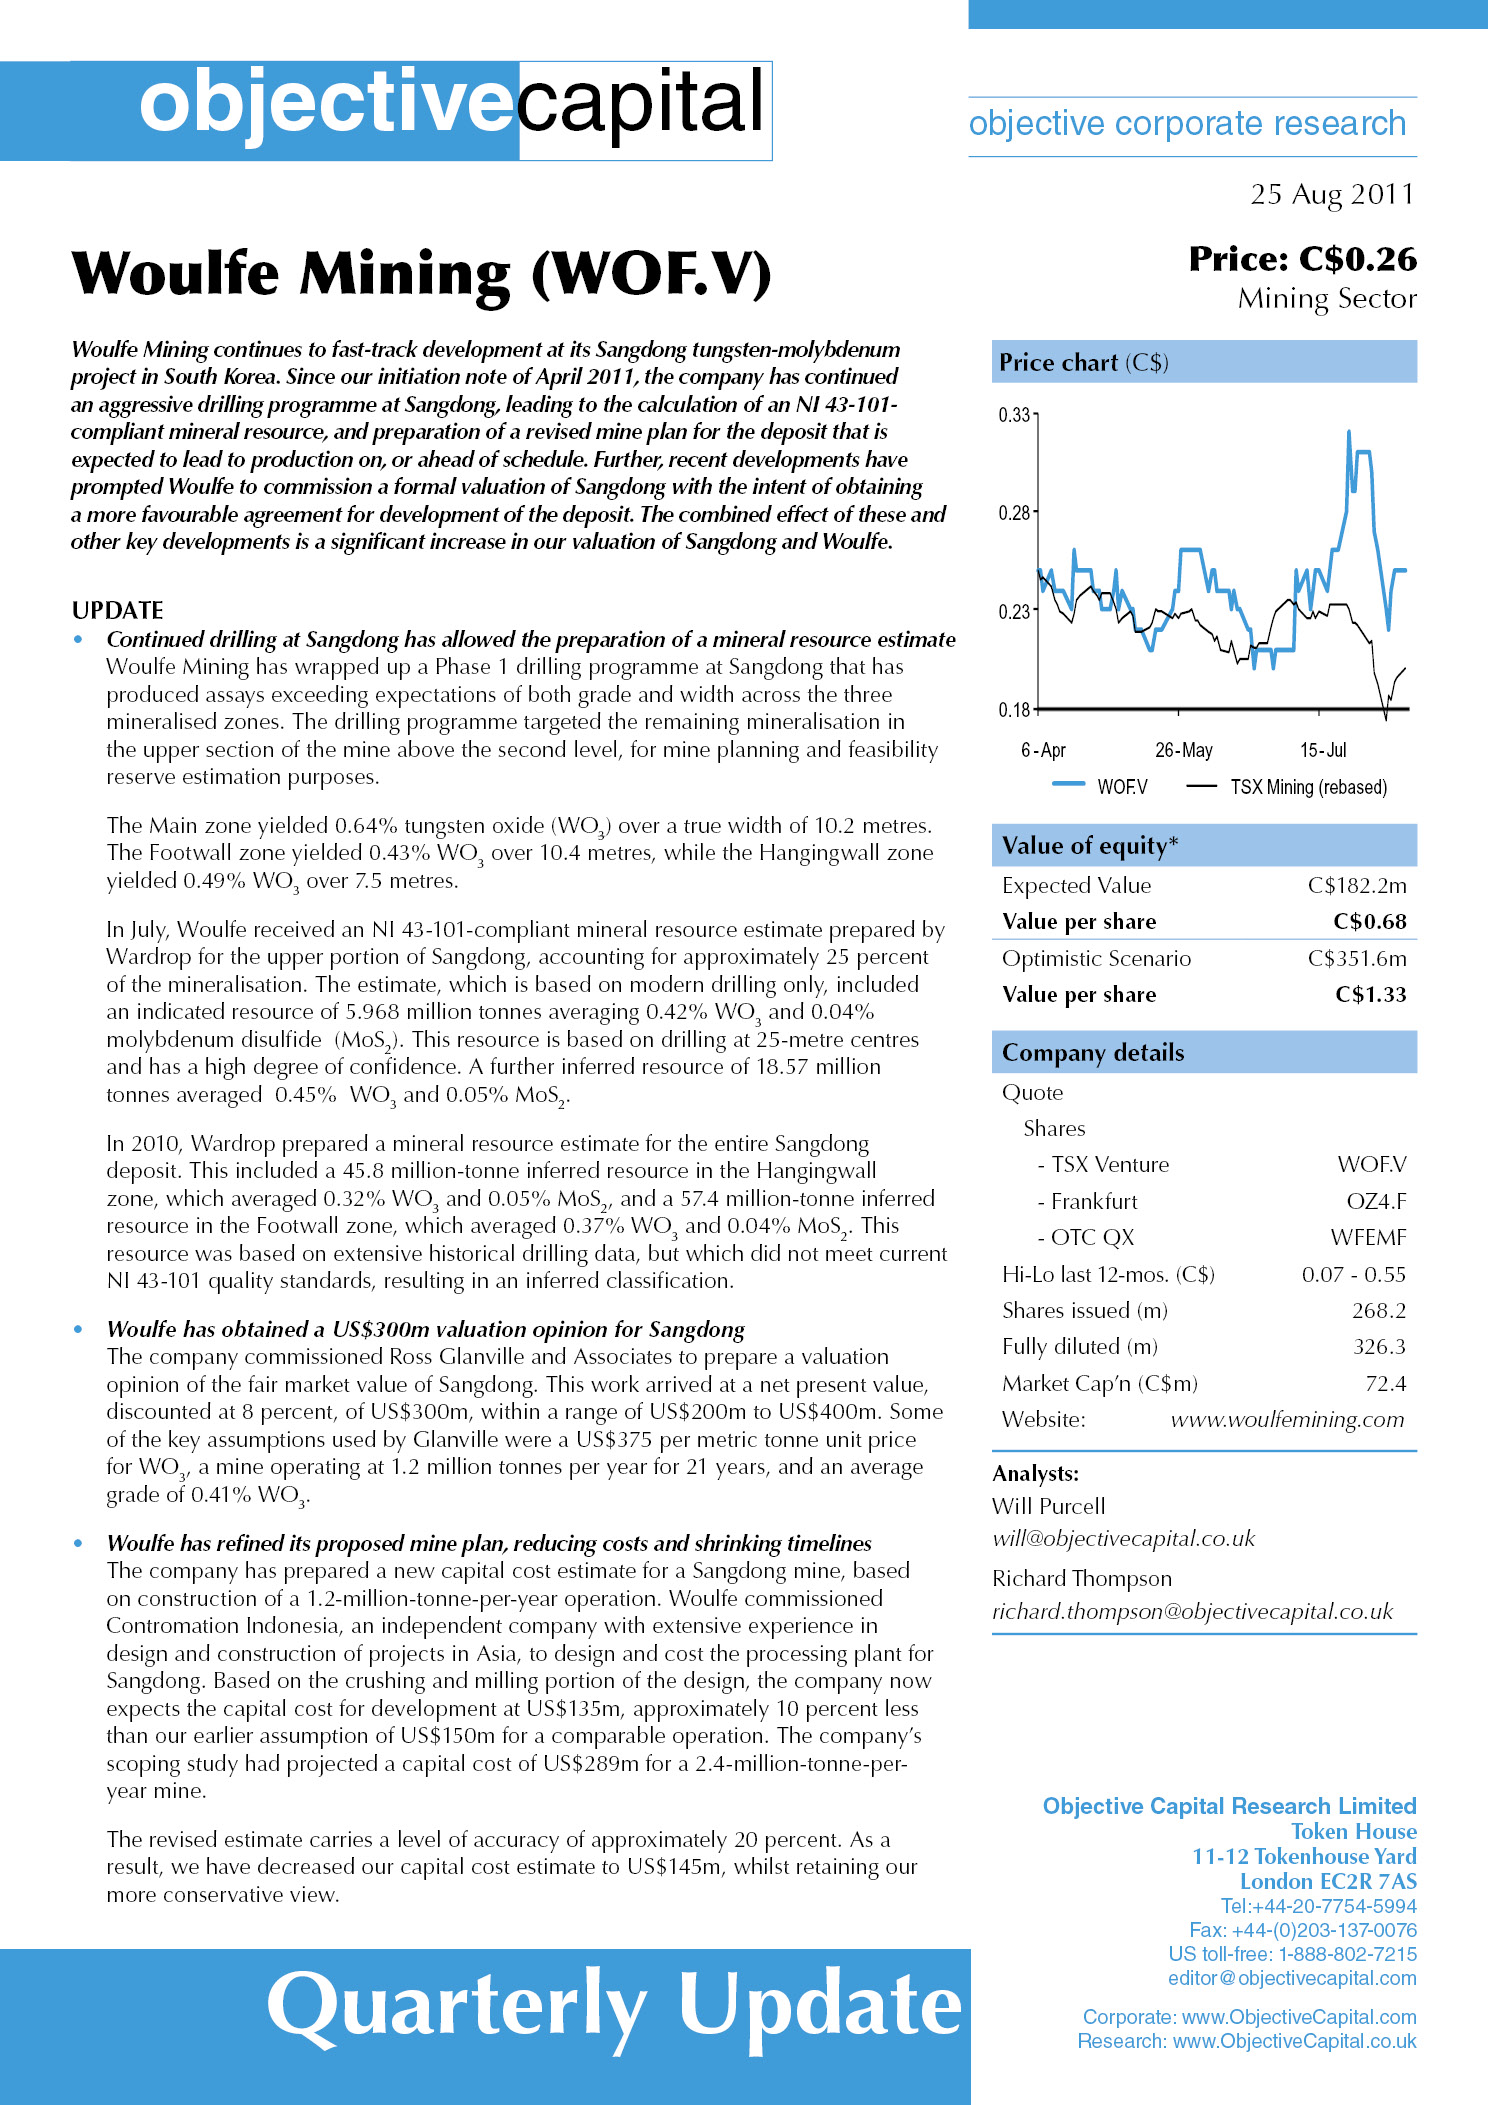 Read report on Woulfe Mining (WOF.V) - significant increase in our valuation